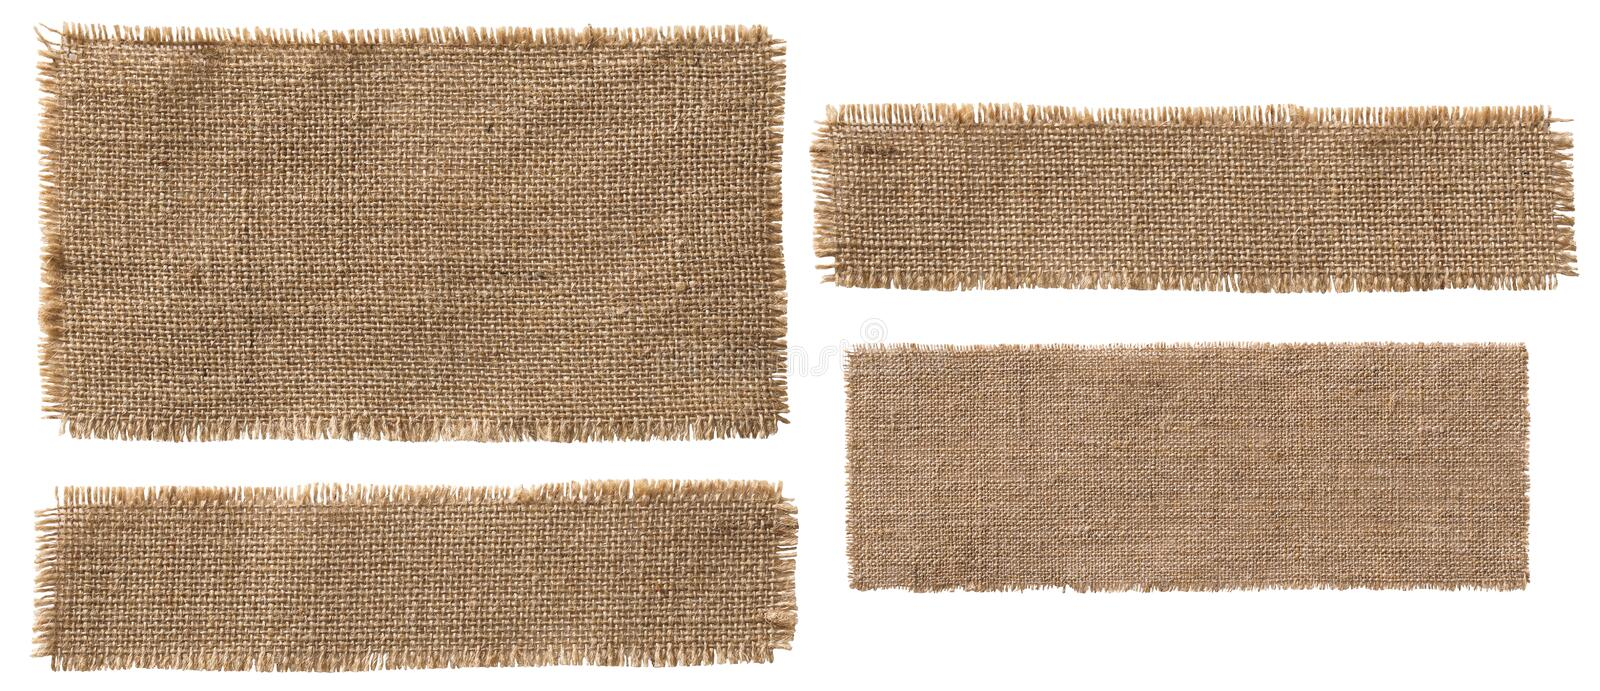 Burlap Fabric Label Pieces, Rustic Hessian Patch Torn Sack Cloth royalty free stock photos